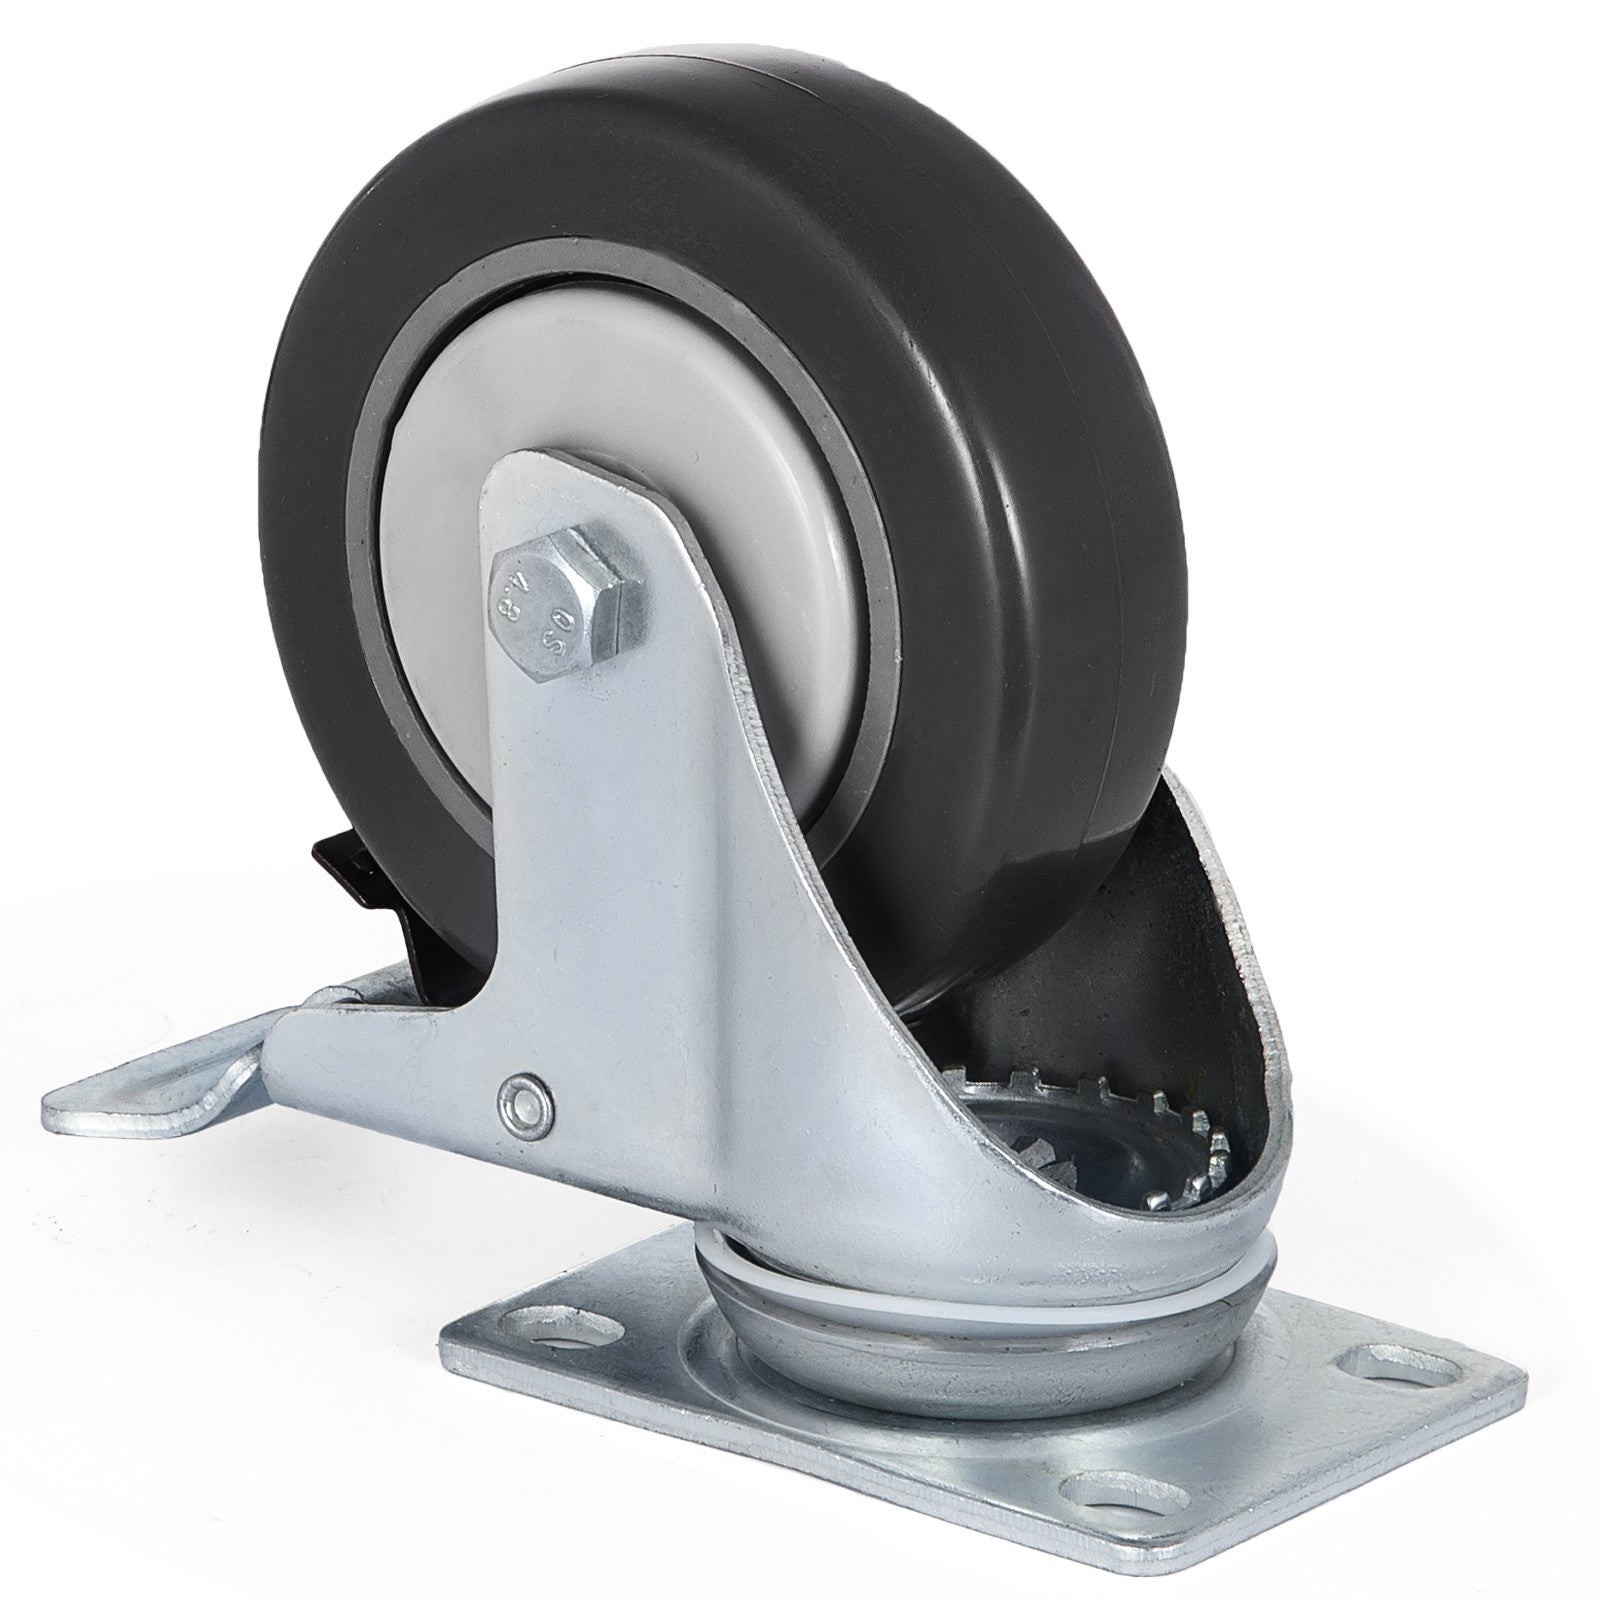 Swivel Plate Casters 32 Pack 4 Inch W/16 Brakes Durable Polyurethane Wheels